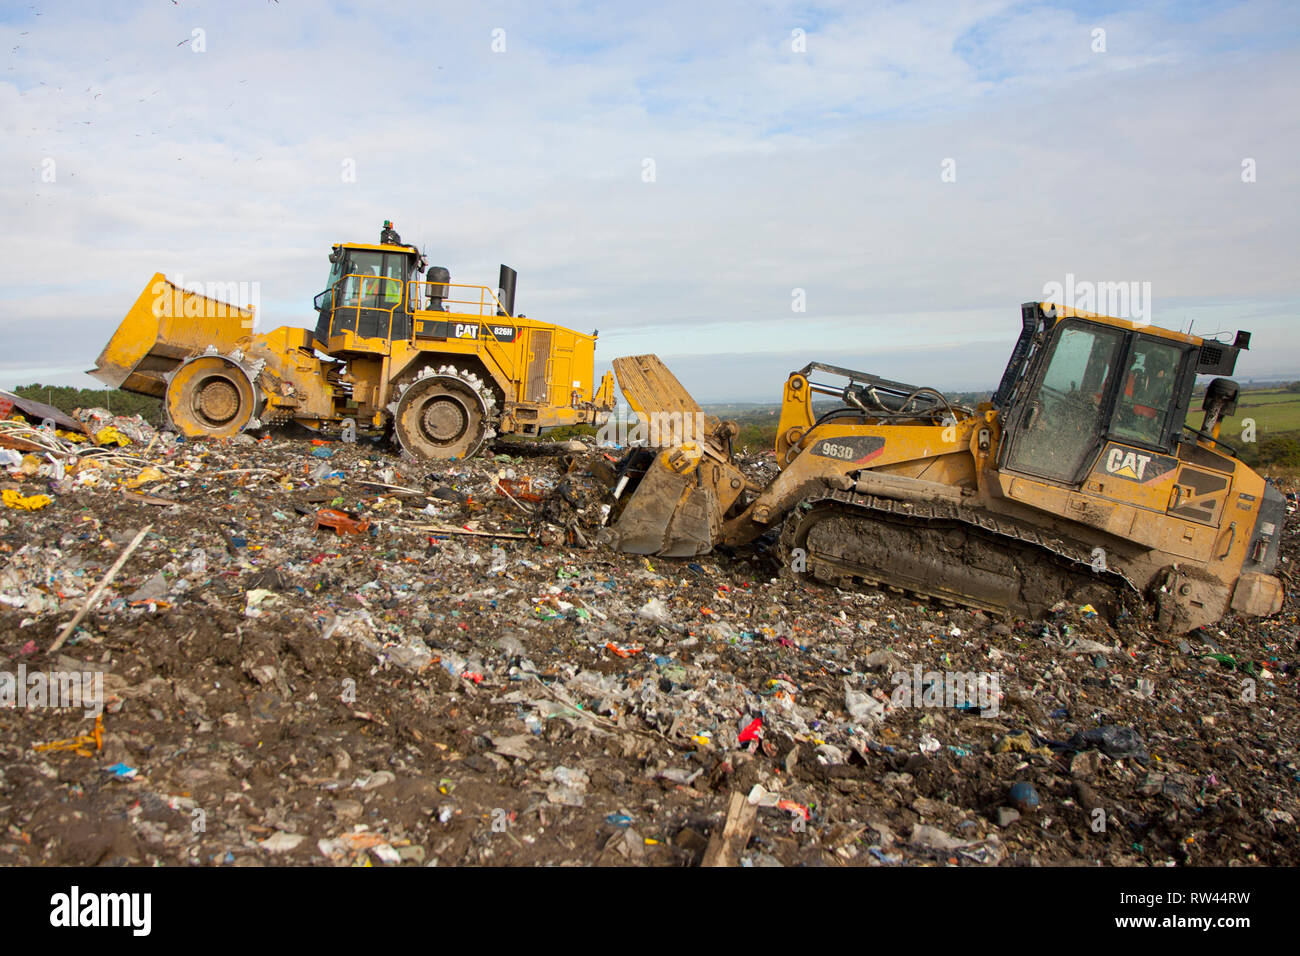 waste, rubbish, recycle, garbage, plant, collection, green, bin, wood, metal, plastic, cardboard,  landfill,dump, waste, management, materials, paper, - Stock Image